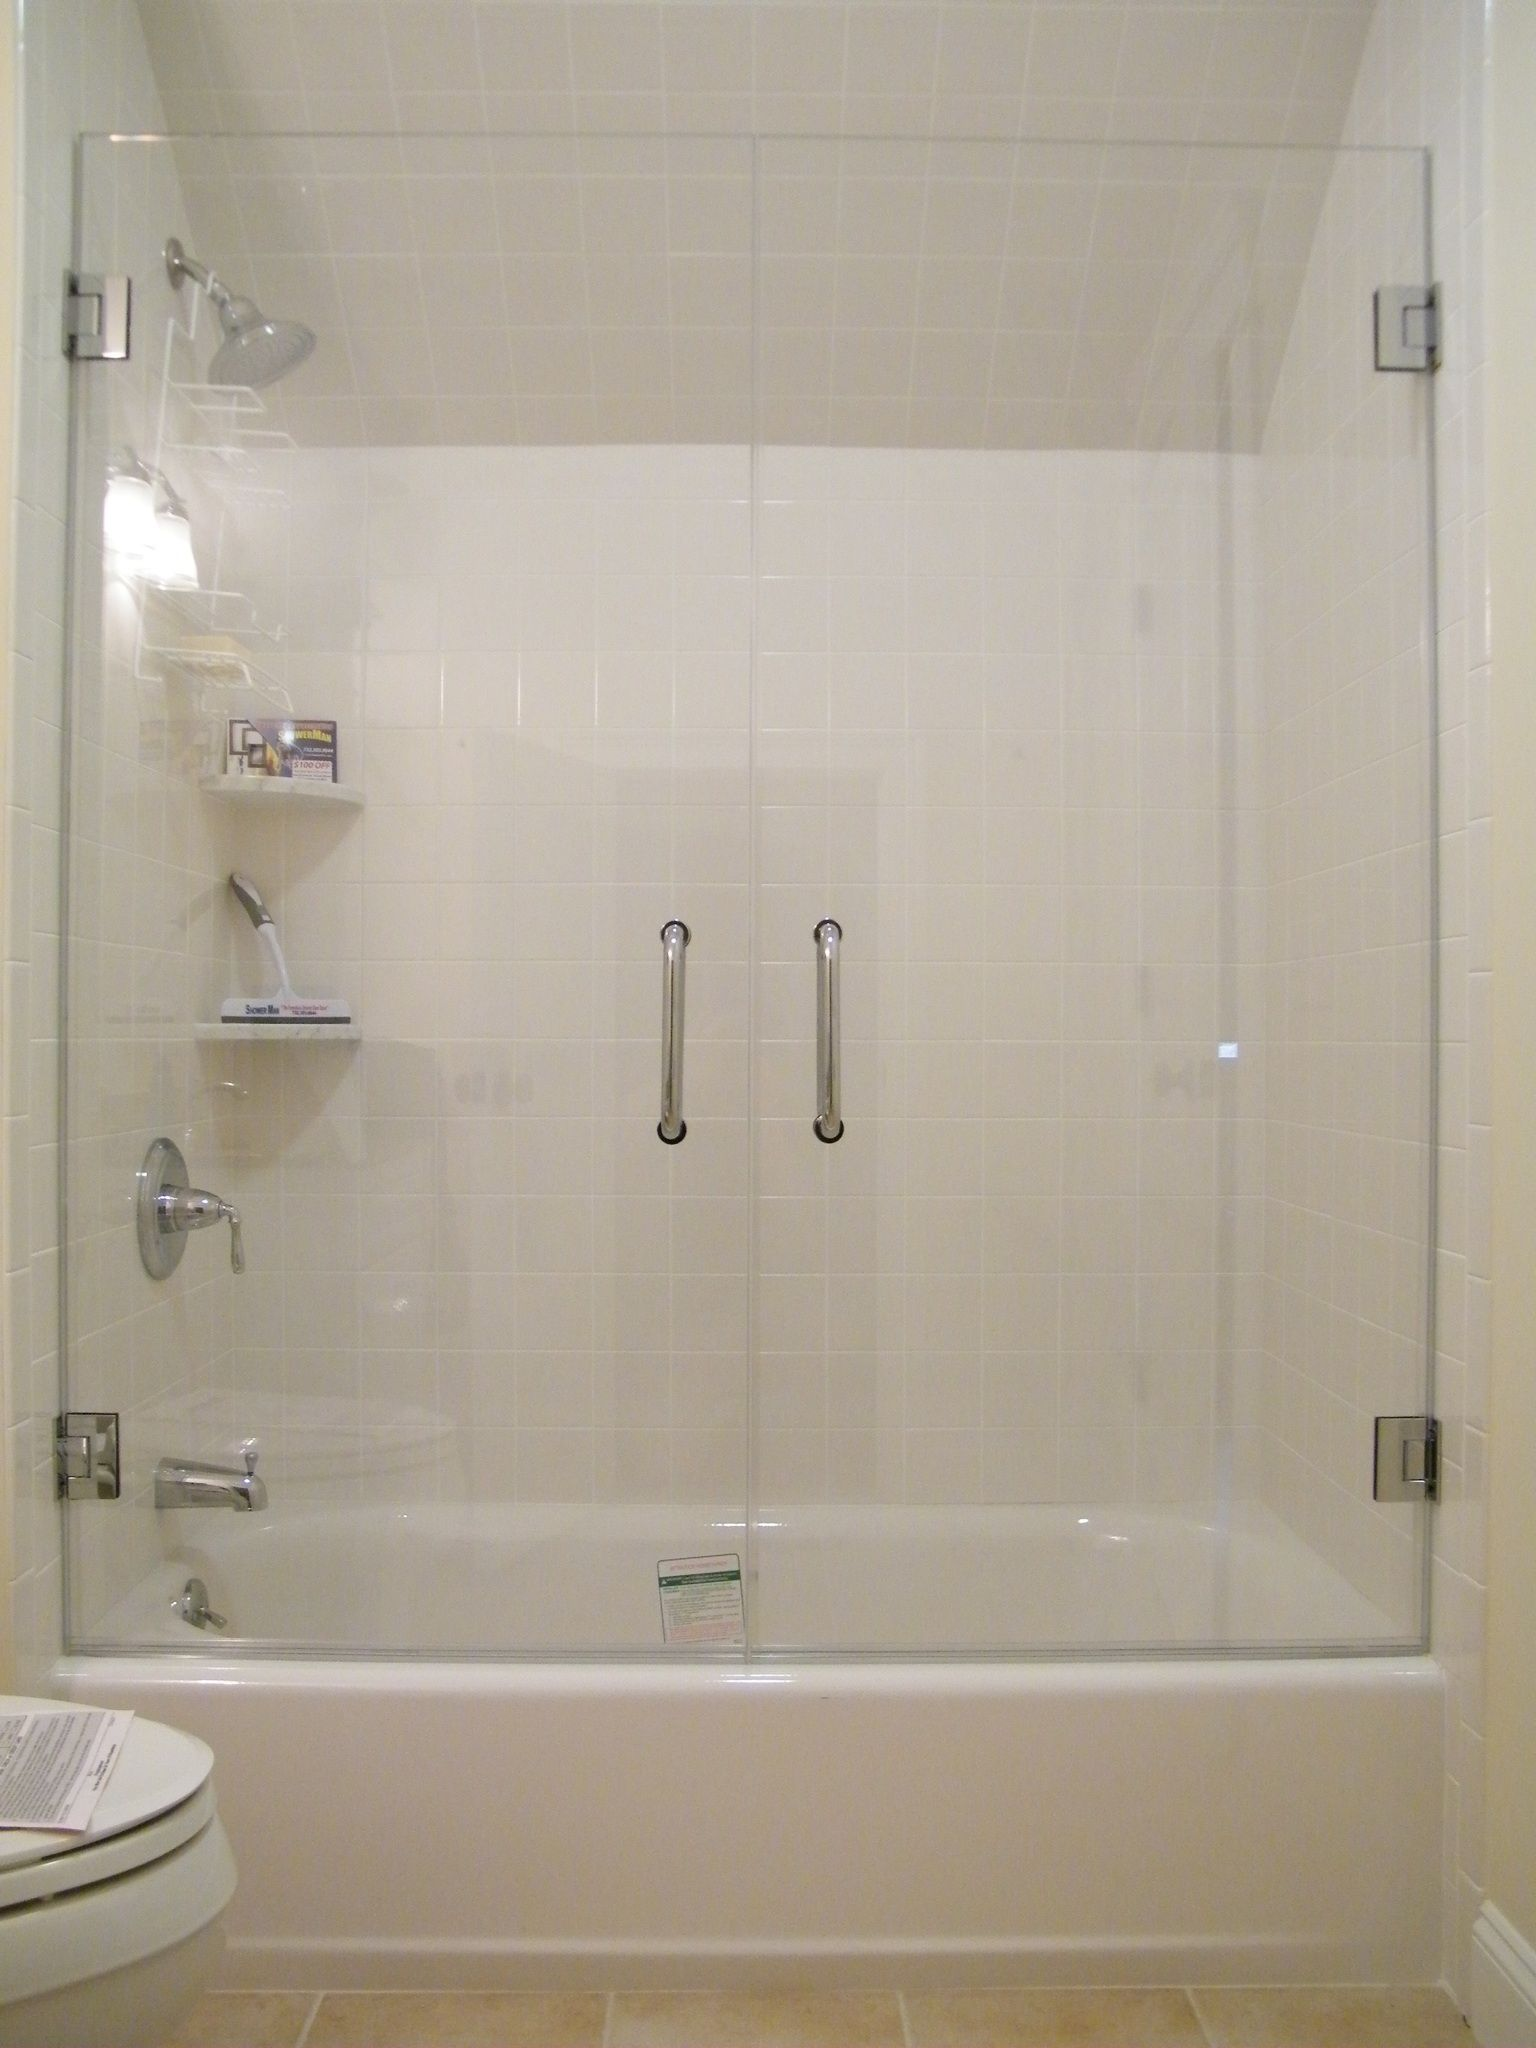 for doors beautiful frameless door bathtub hinged bathroom glass